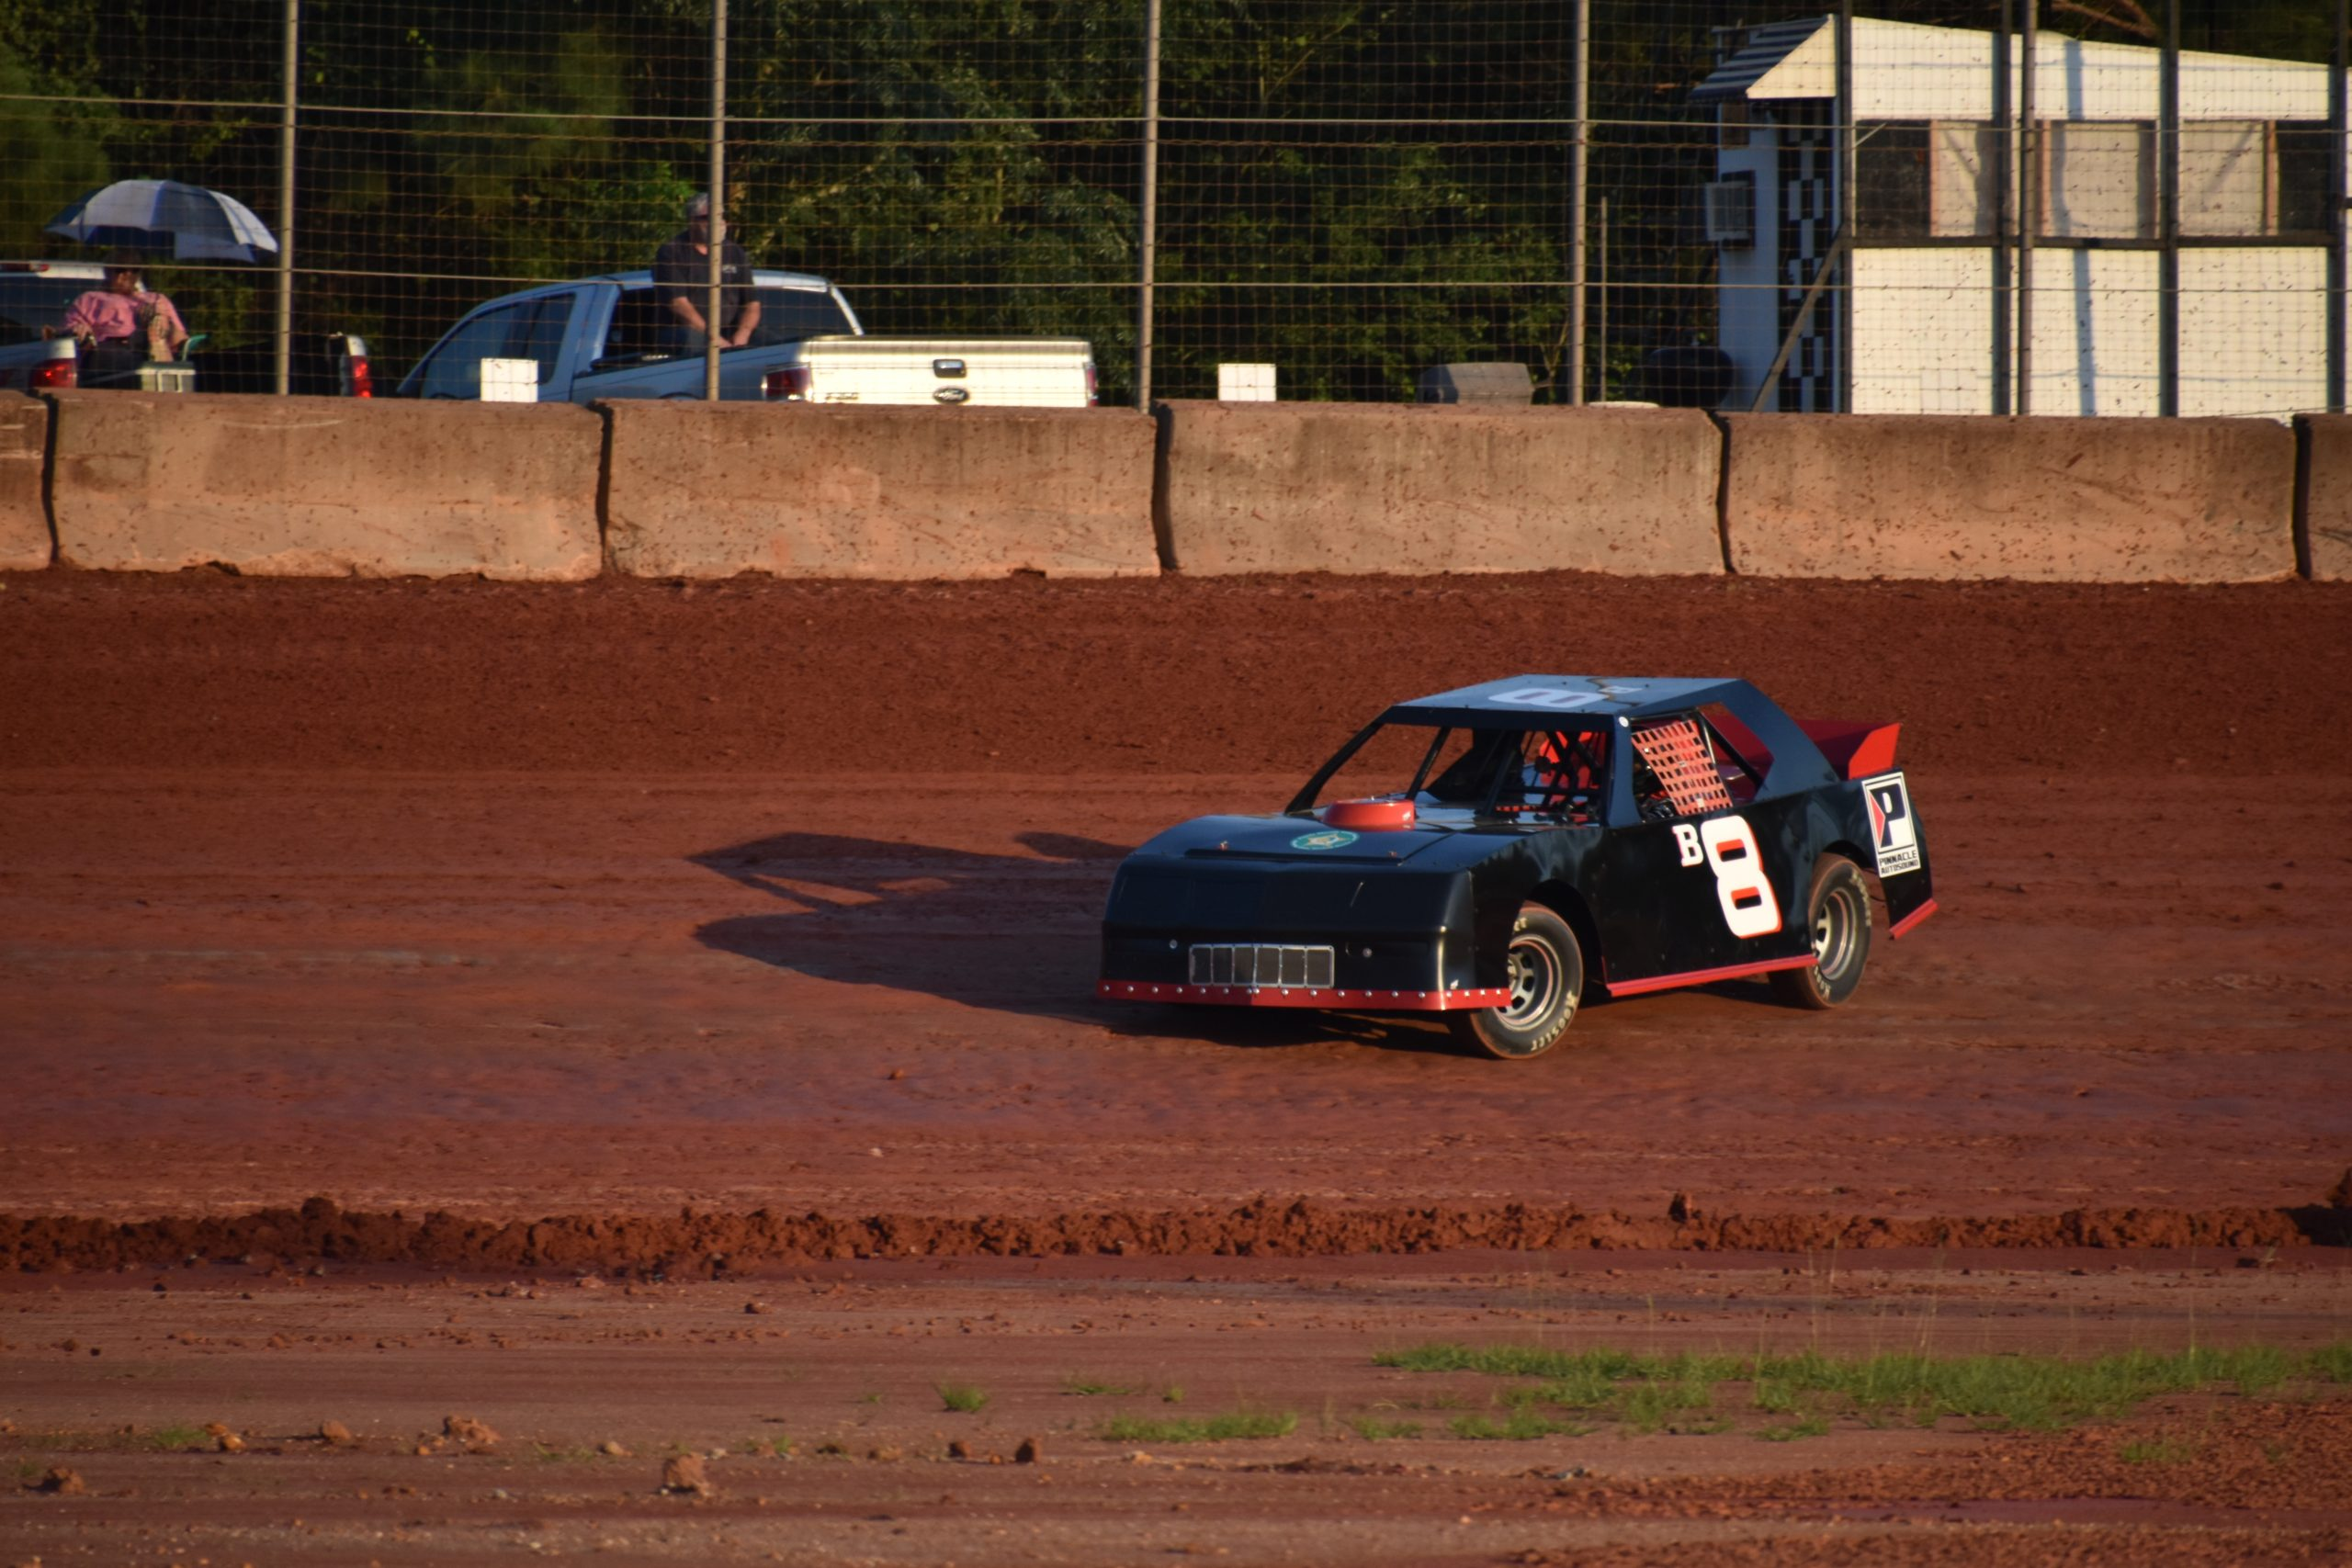 9-25-21 Crate Racin' USA Dirt Late Models